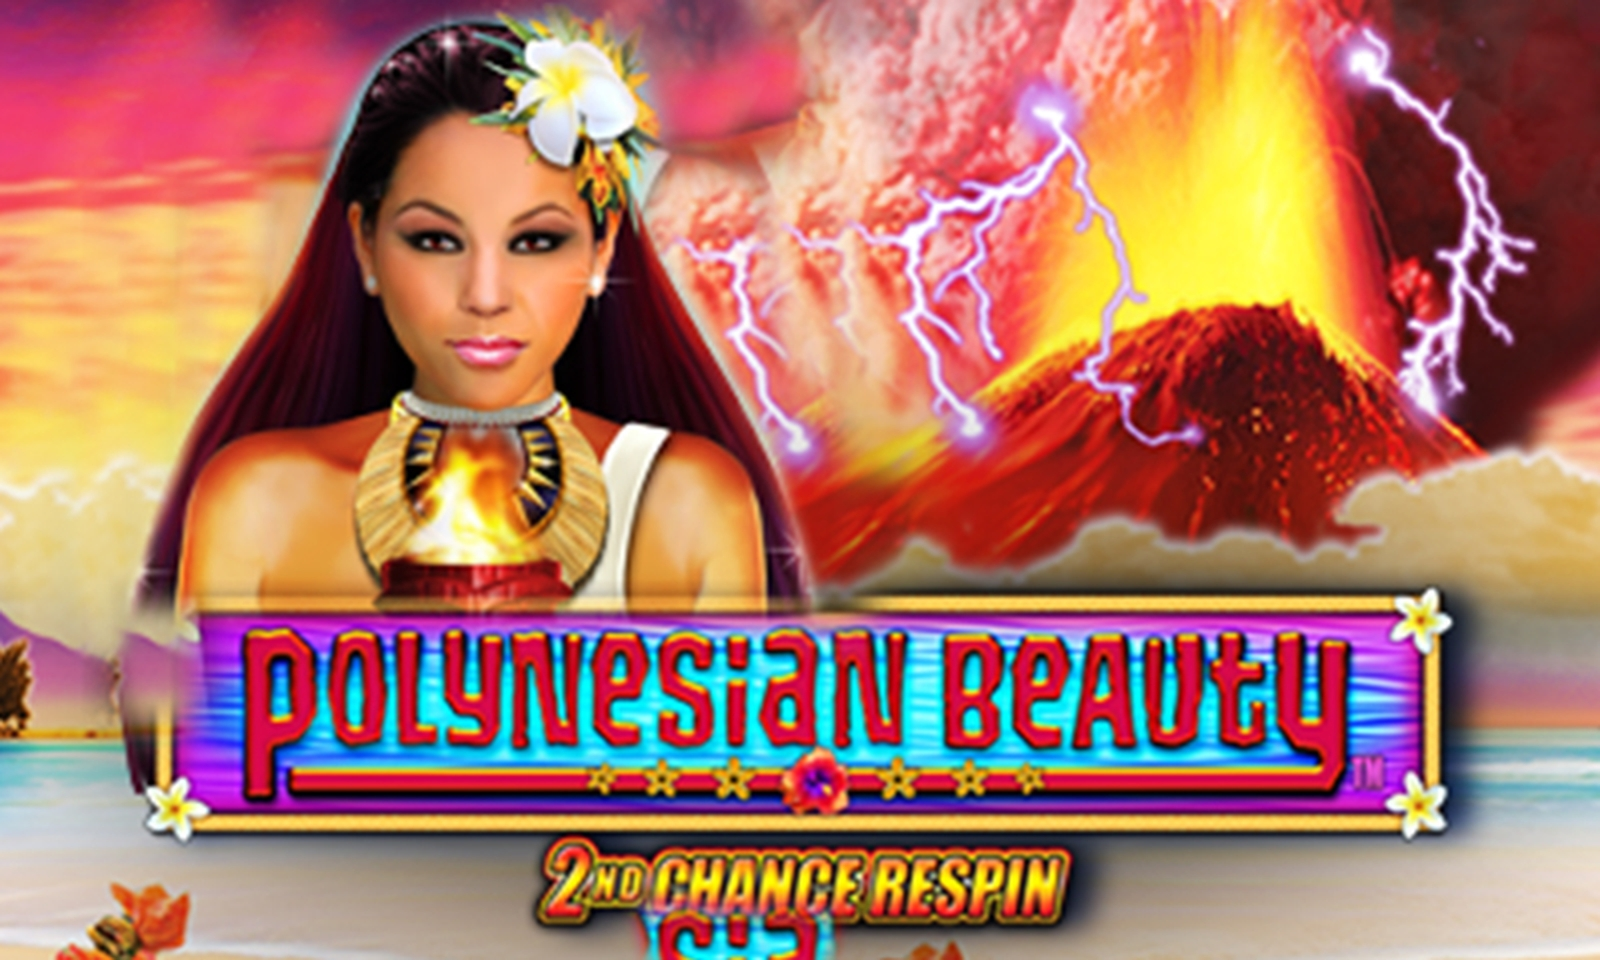 The Polynesian Beauty Online Slot Demo Game by High Flyer Games